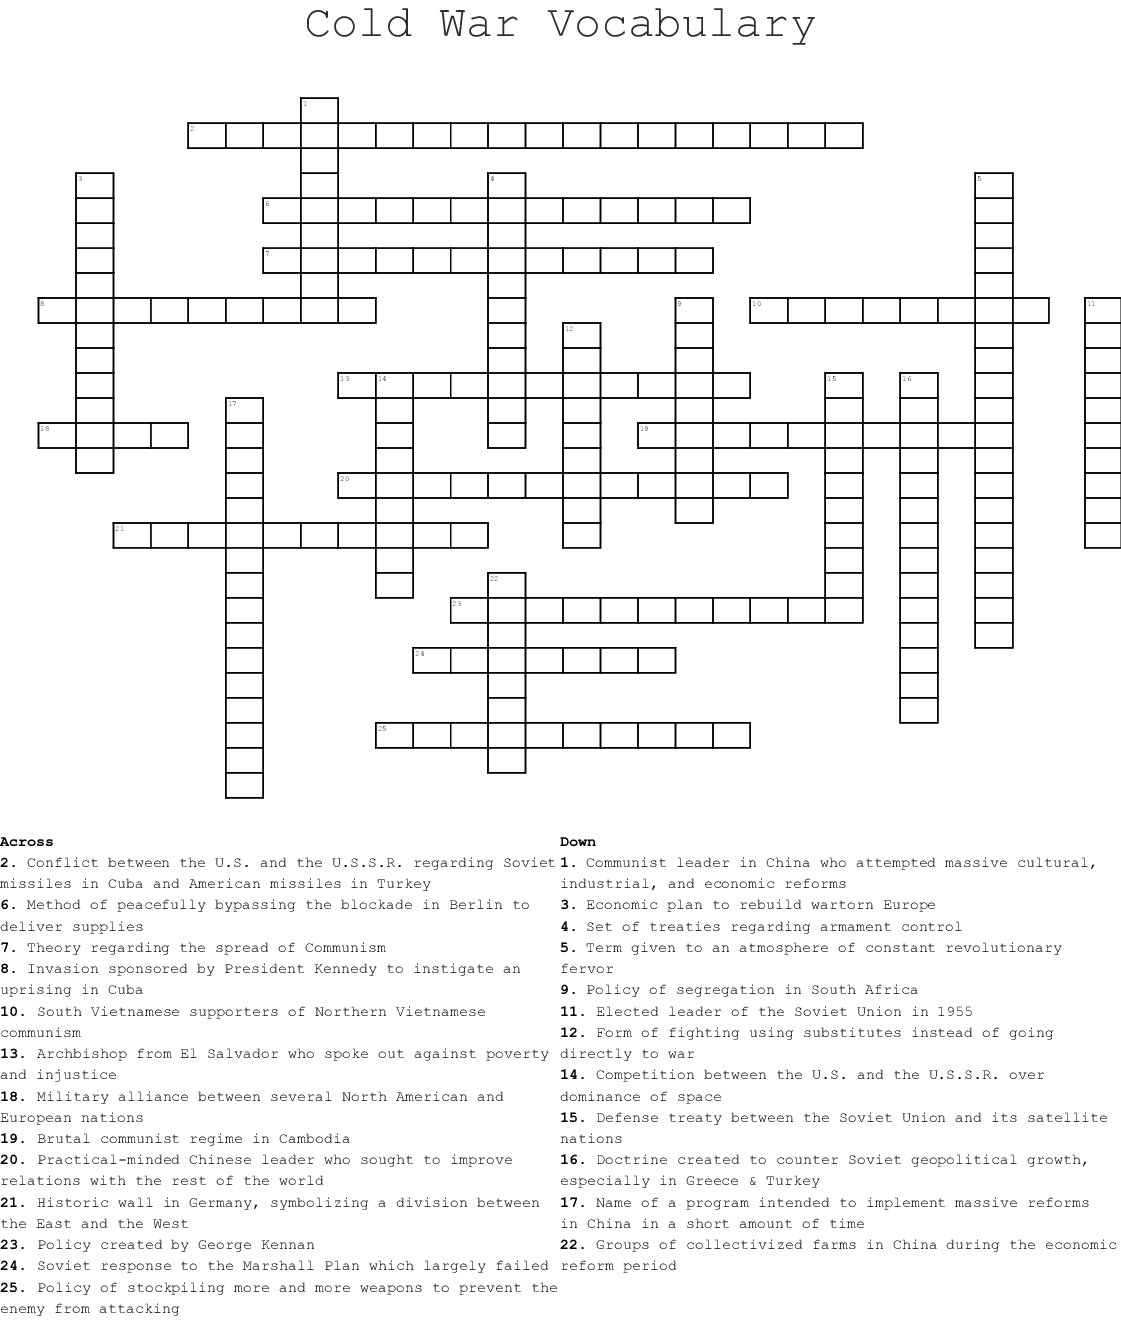 Cold War Vocabulary Crossword - WordMint